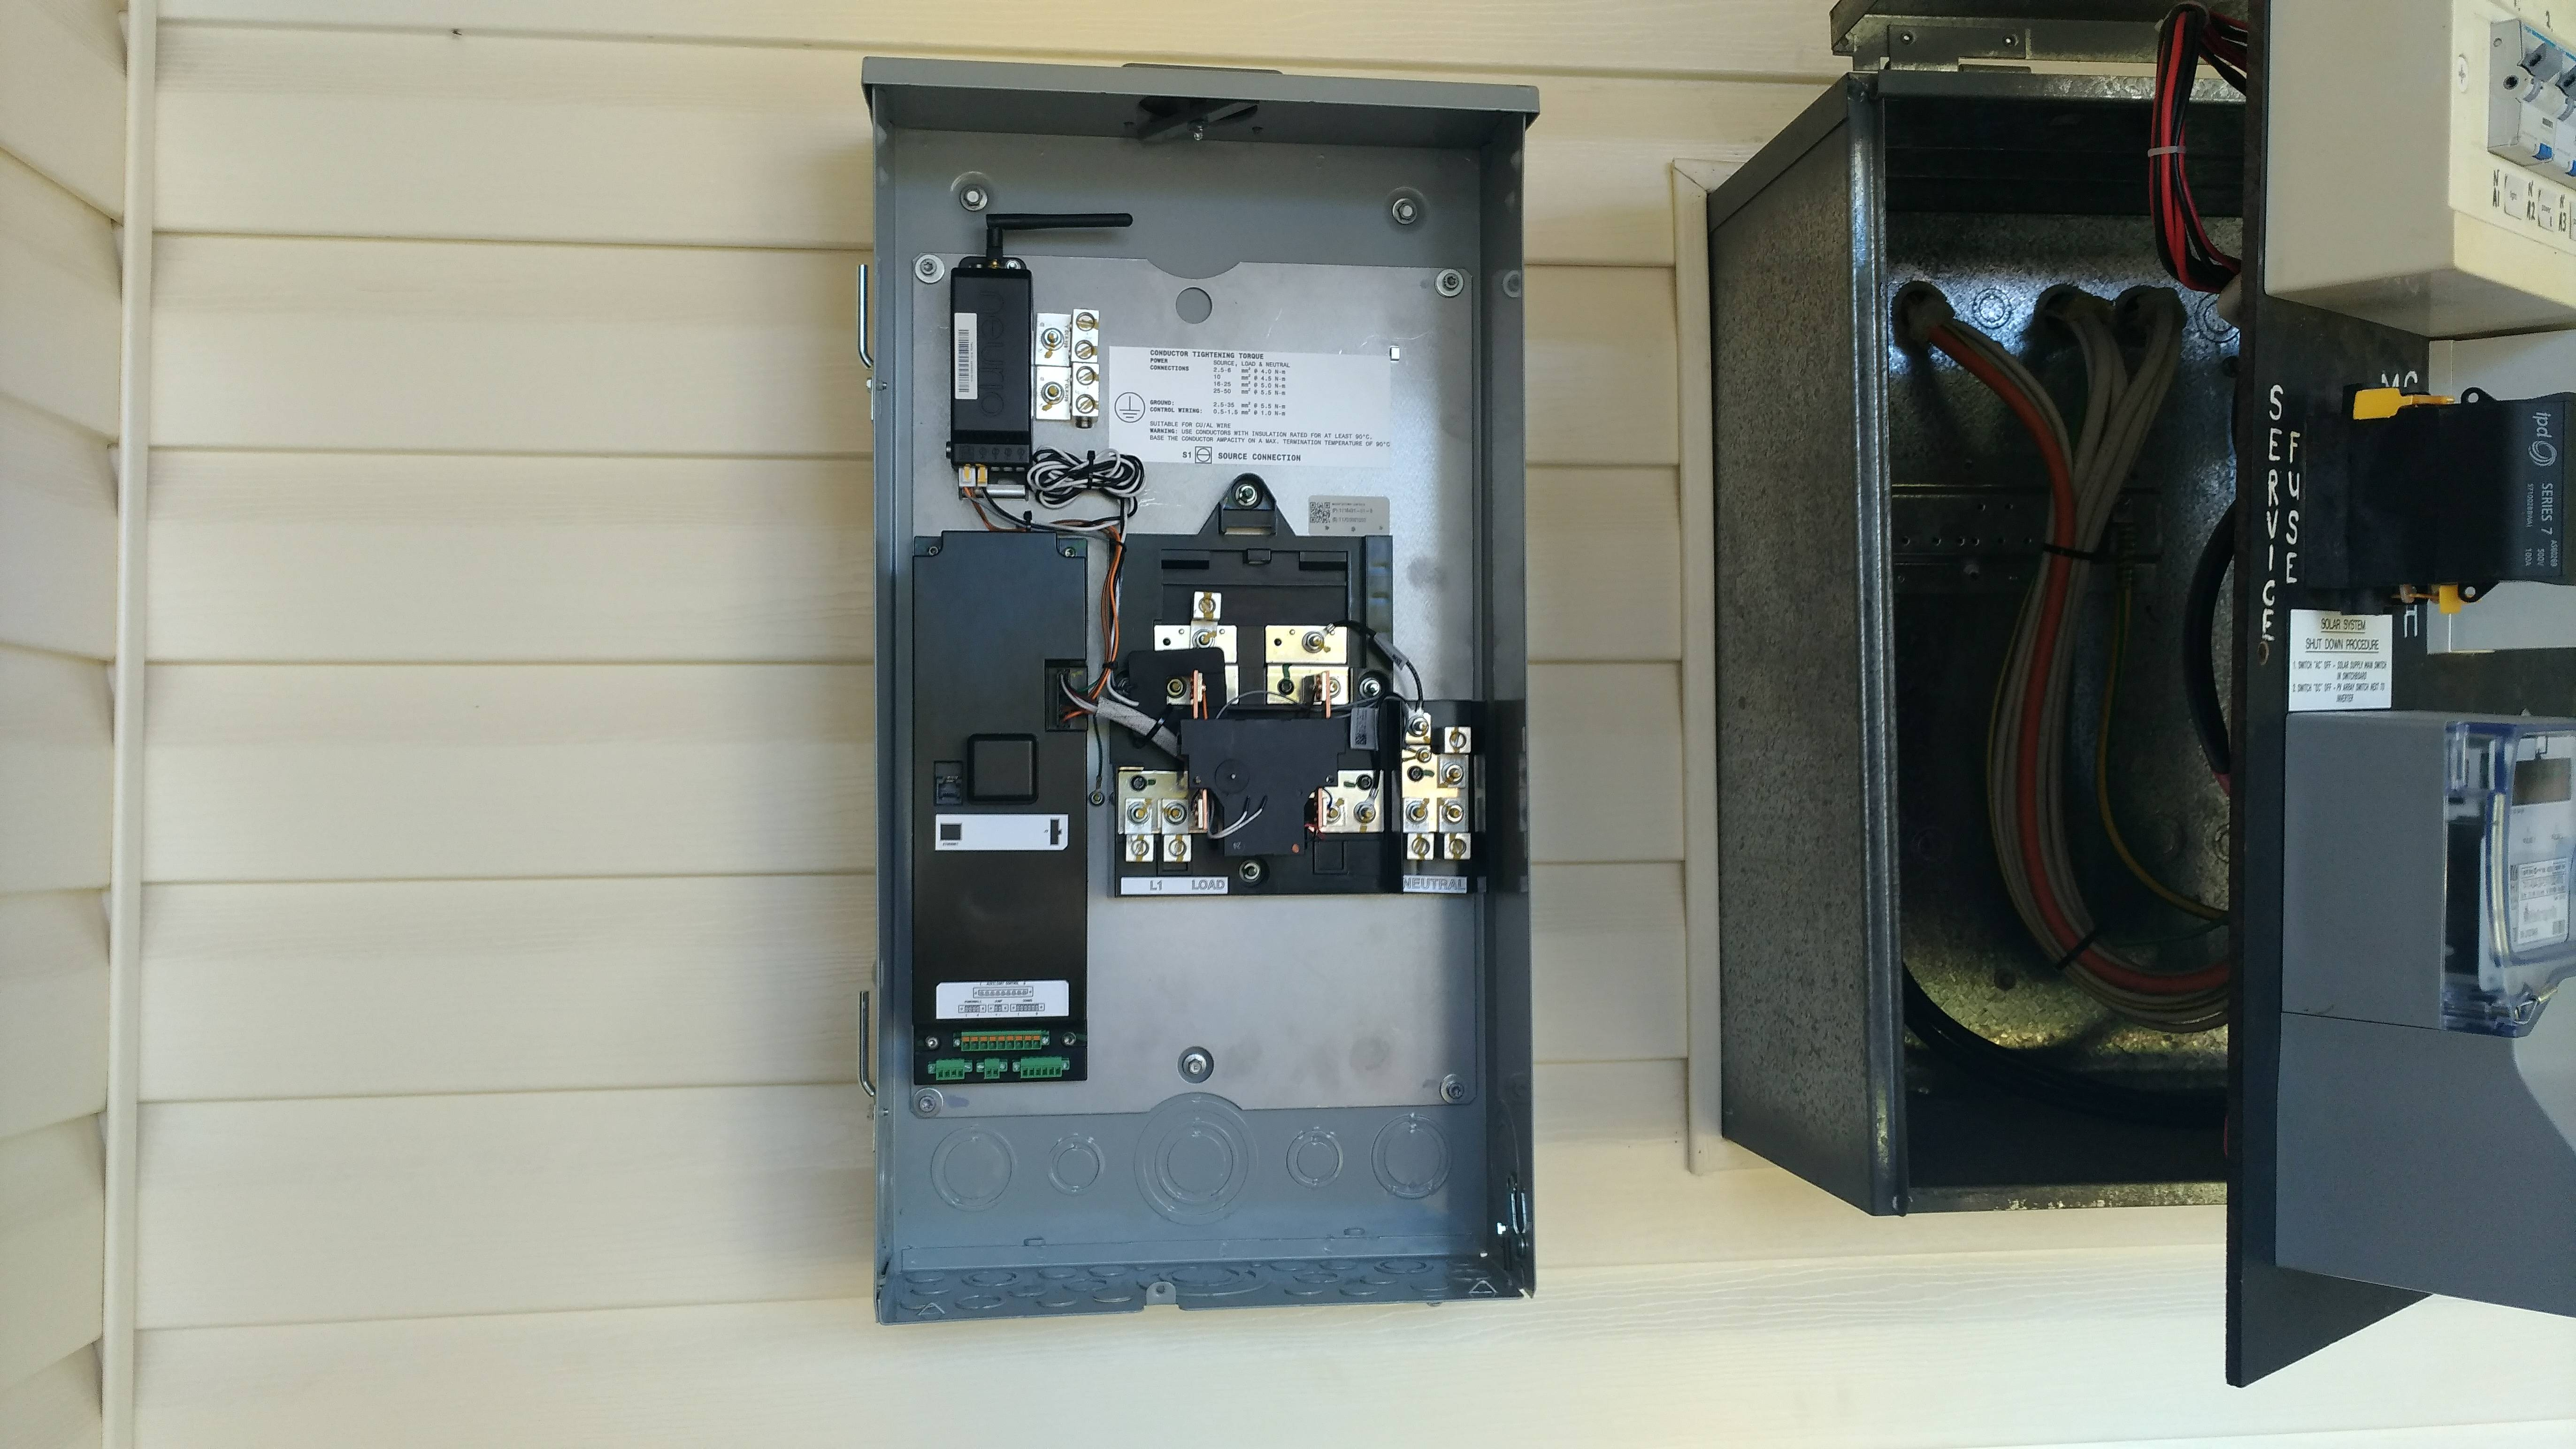 powerwall 2 wiring diagram 2005 honda civic parts tesla domestic solar battery installation photos 1 30 all cabling done there is a clamp on the active input to measure it s generation and gateway measures house load from power cable